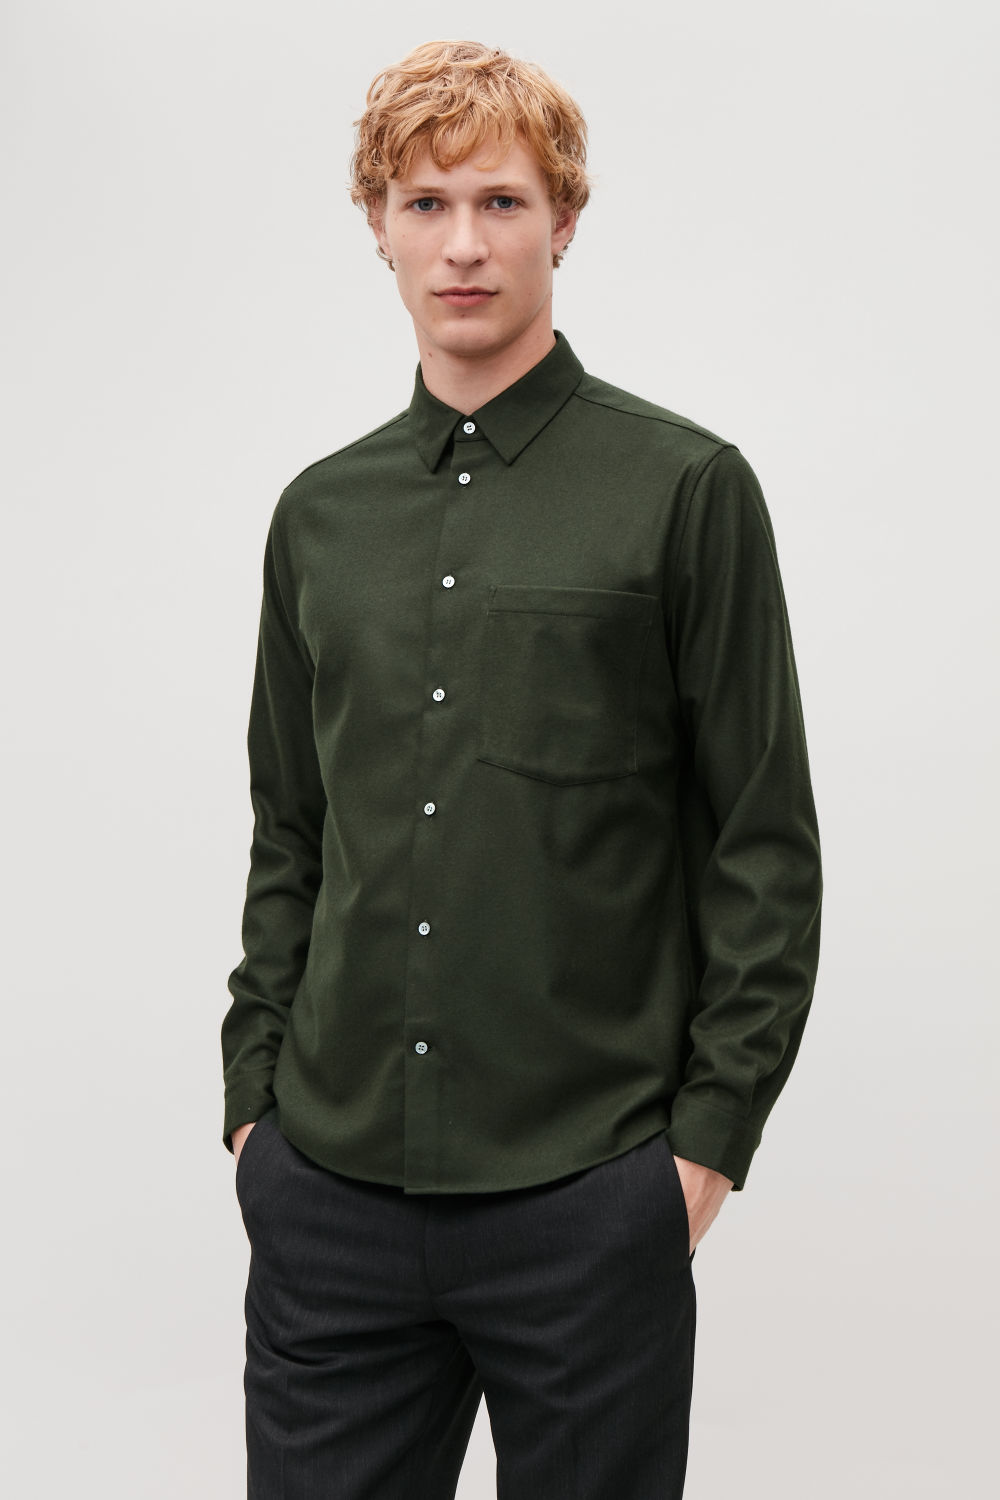 코스 COS FELT WOOL SHIRT,Khaki green